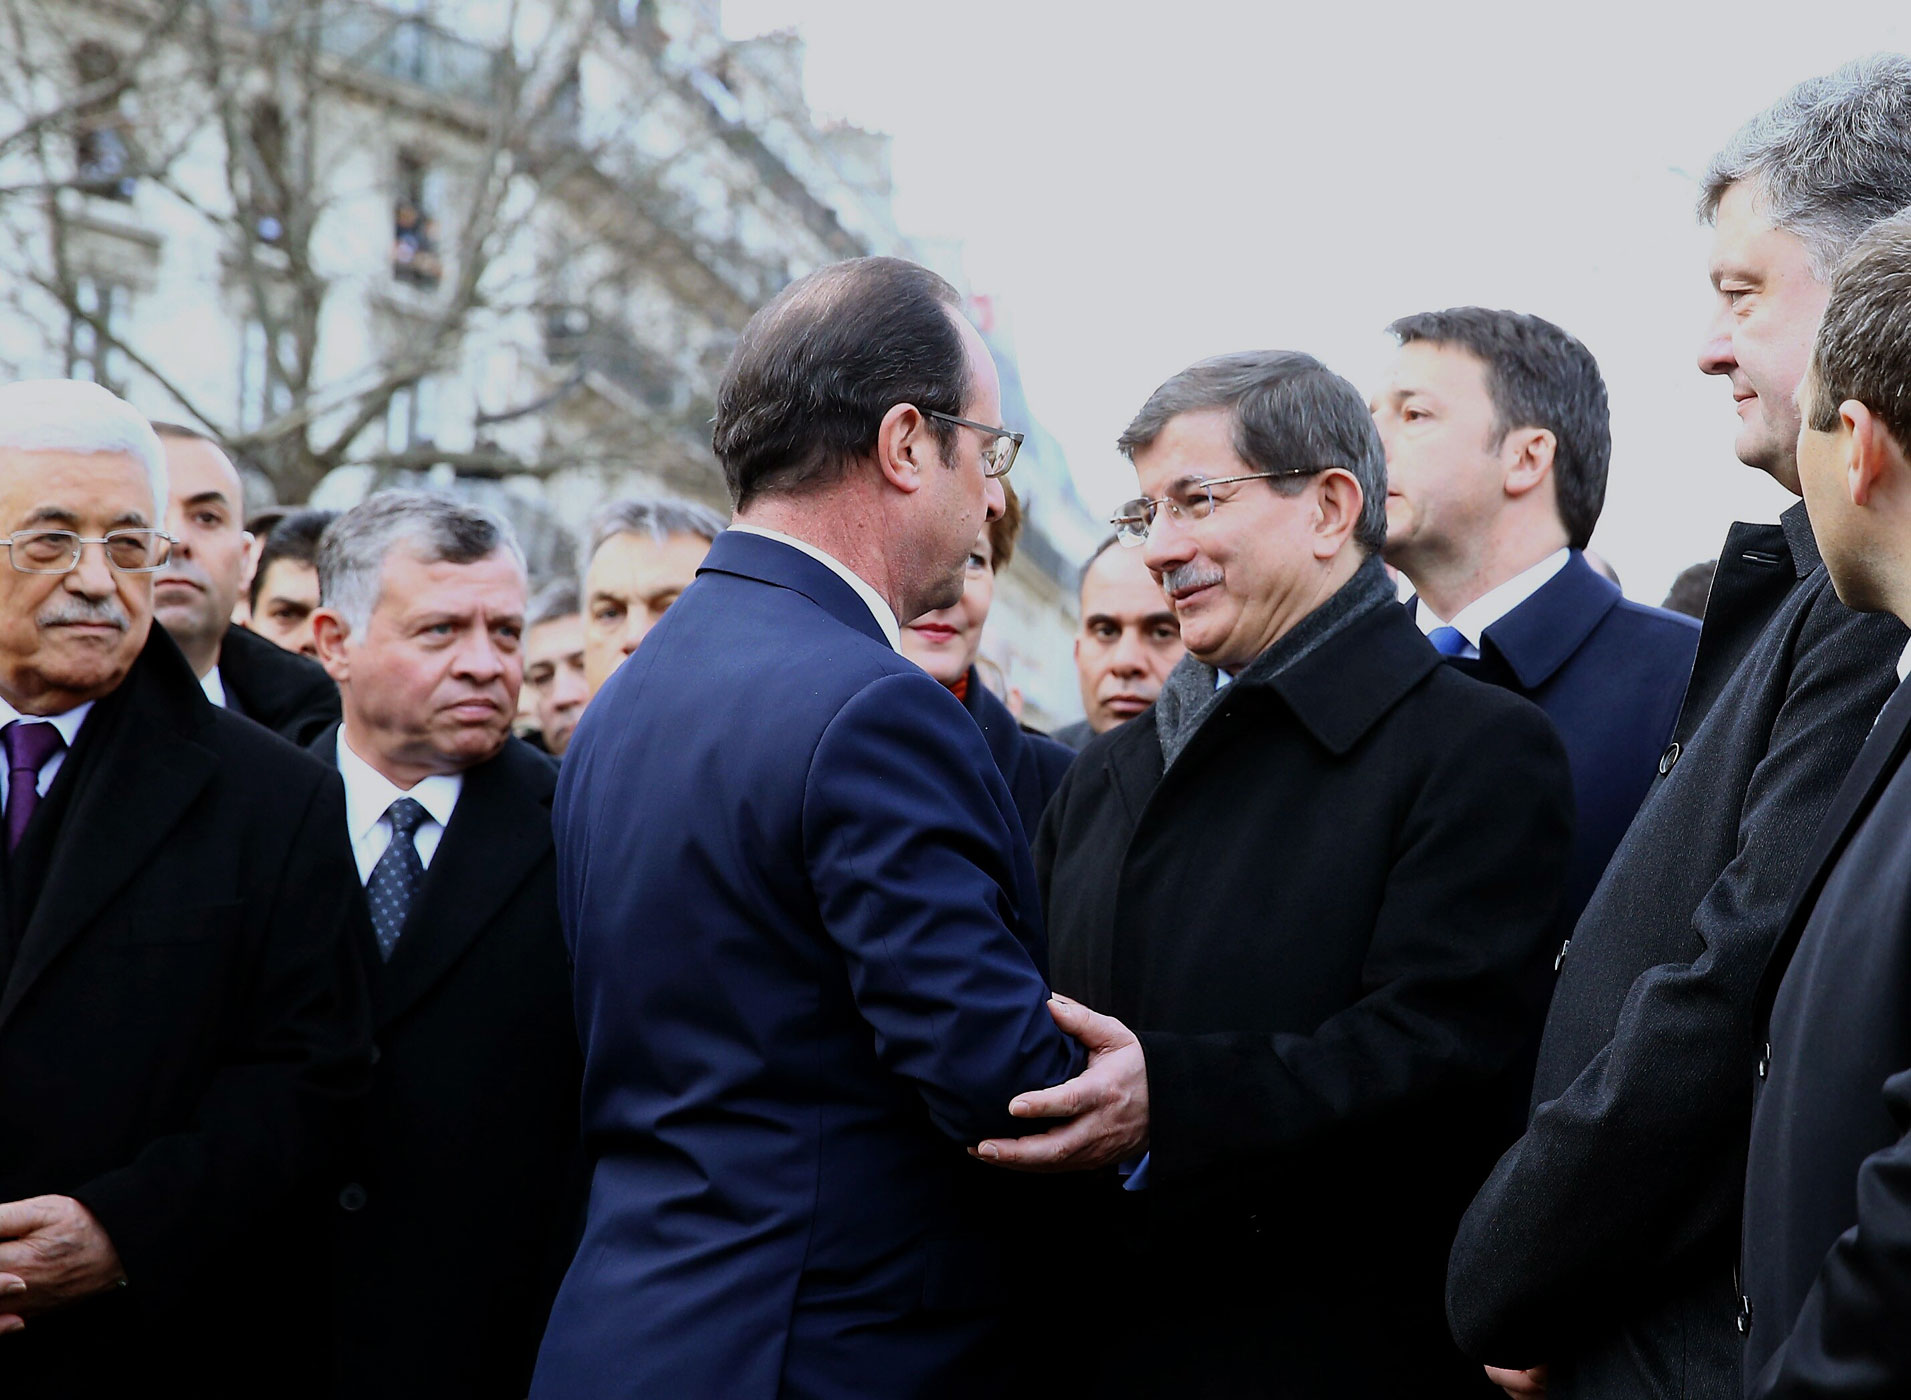 Turkish Prime Minister Ahmet Davutoglu, center right, talks to French President Francois Hollande, center left, during the Unity March 'Marche Republicaine' in Paris, France on Jan. 11, 2014.